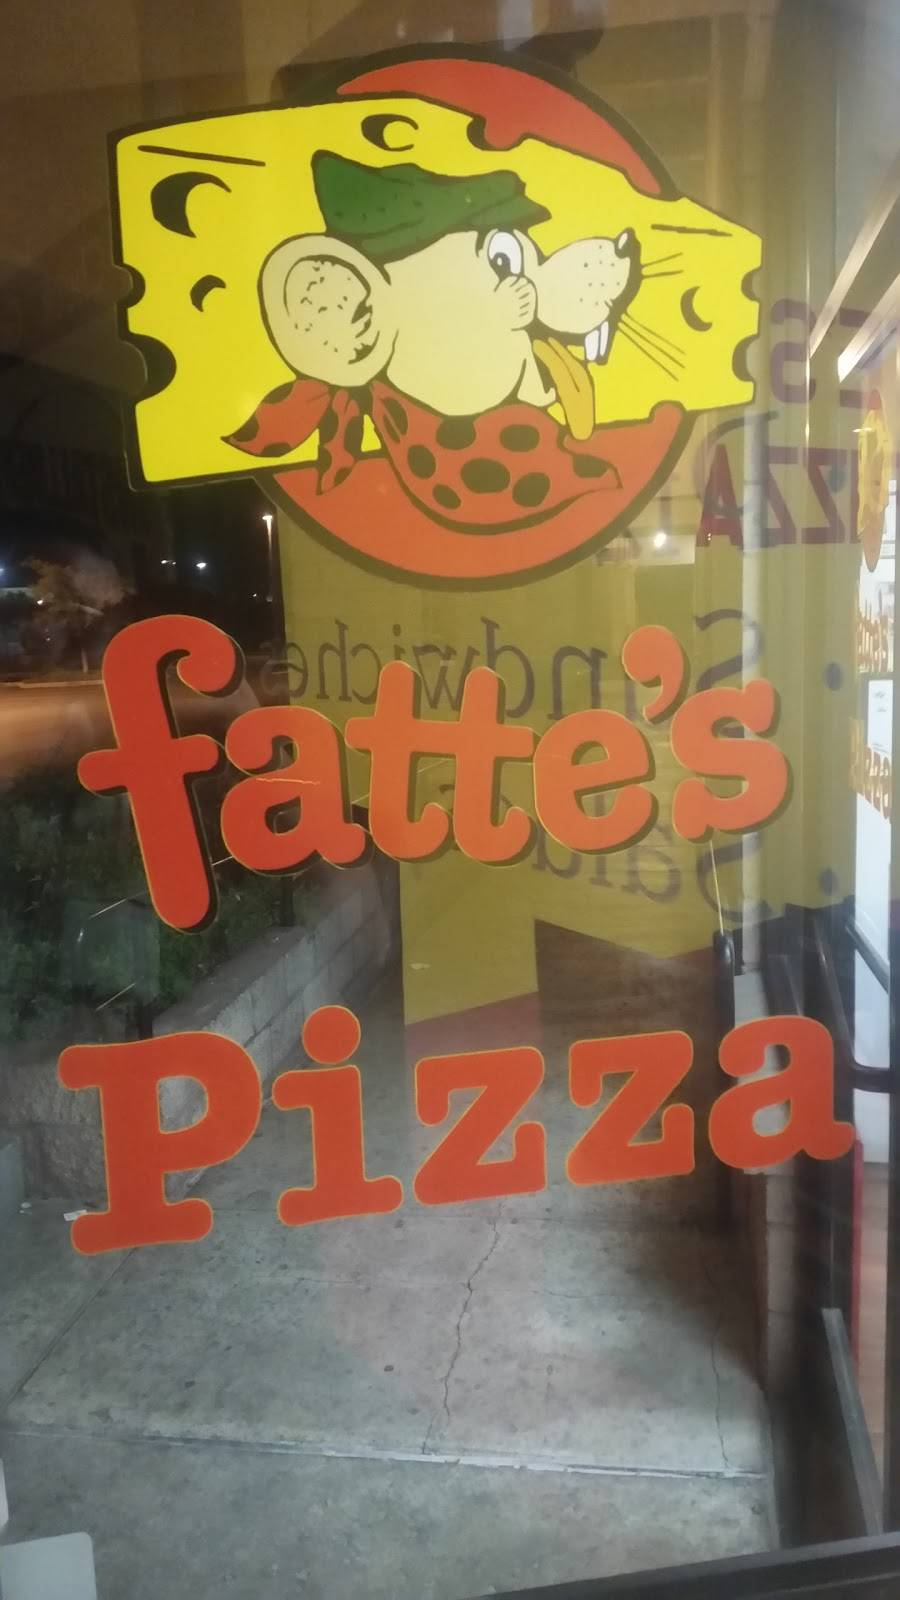 Fattes Pizza | meal delivery | 155 Niblick Rd, Paso Robles, CA 93446, USA | 8052377779 OR +1 805-237-7779